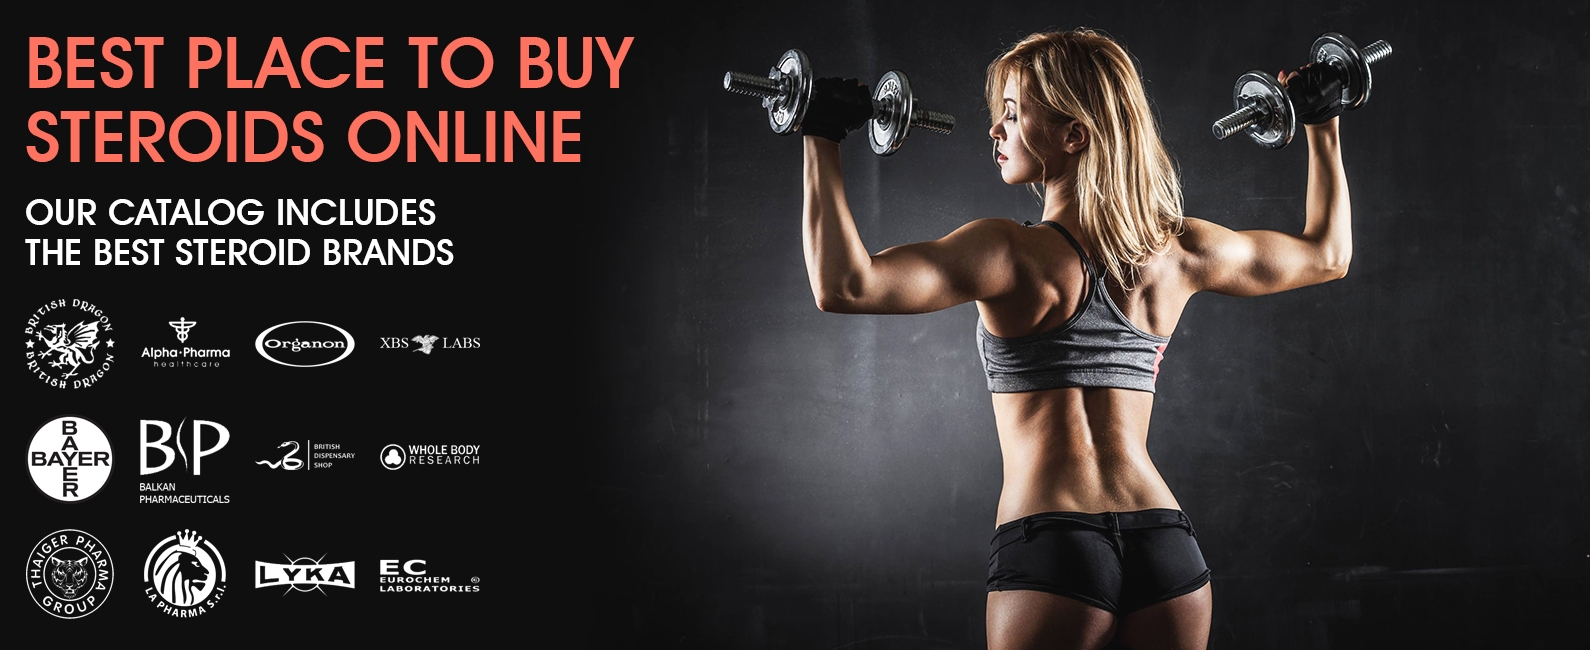 @anabolicsteroidsforsale Cover Image